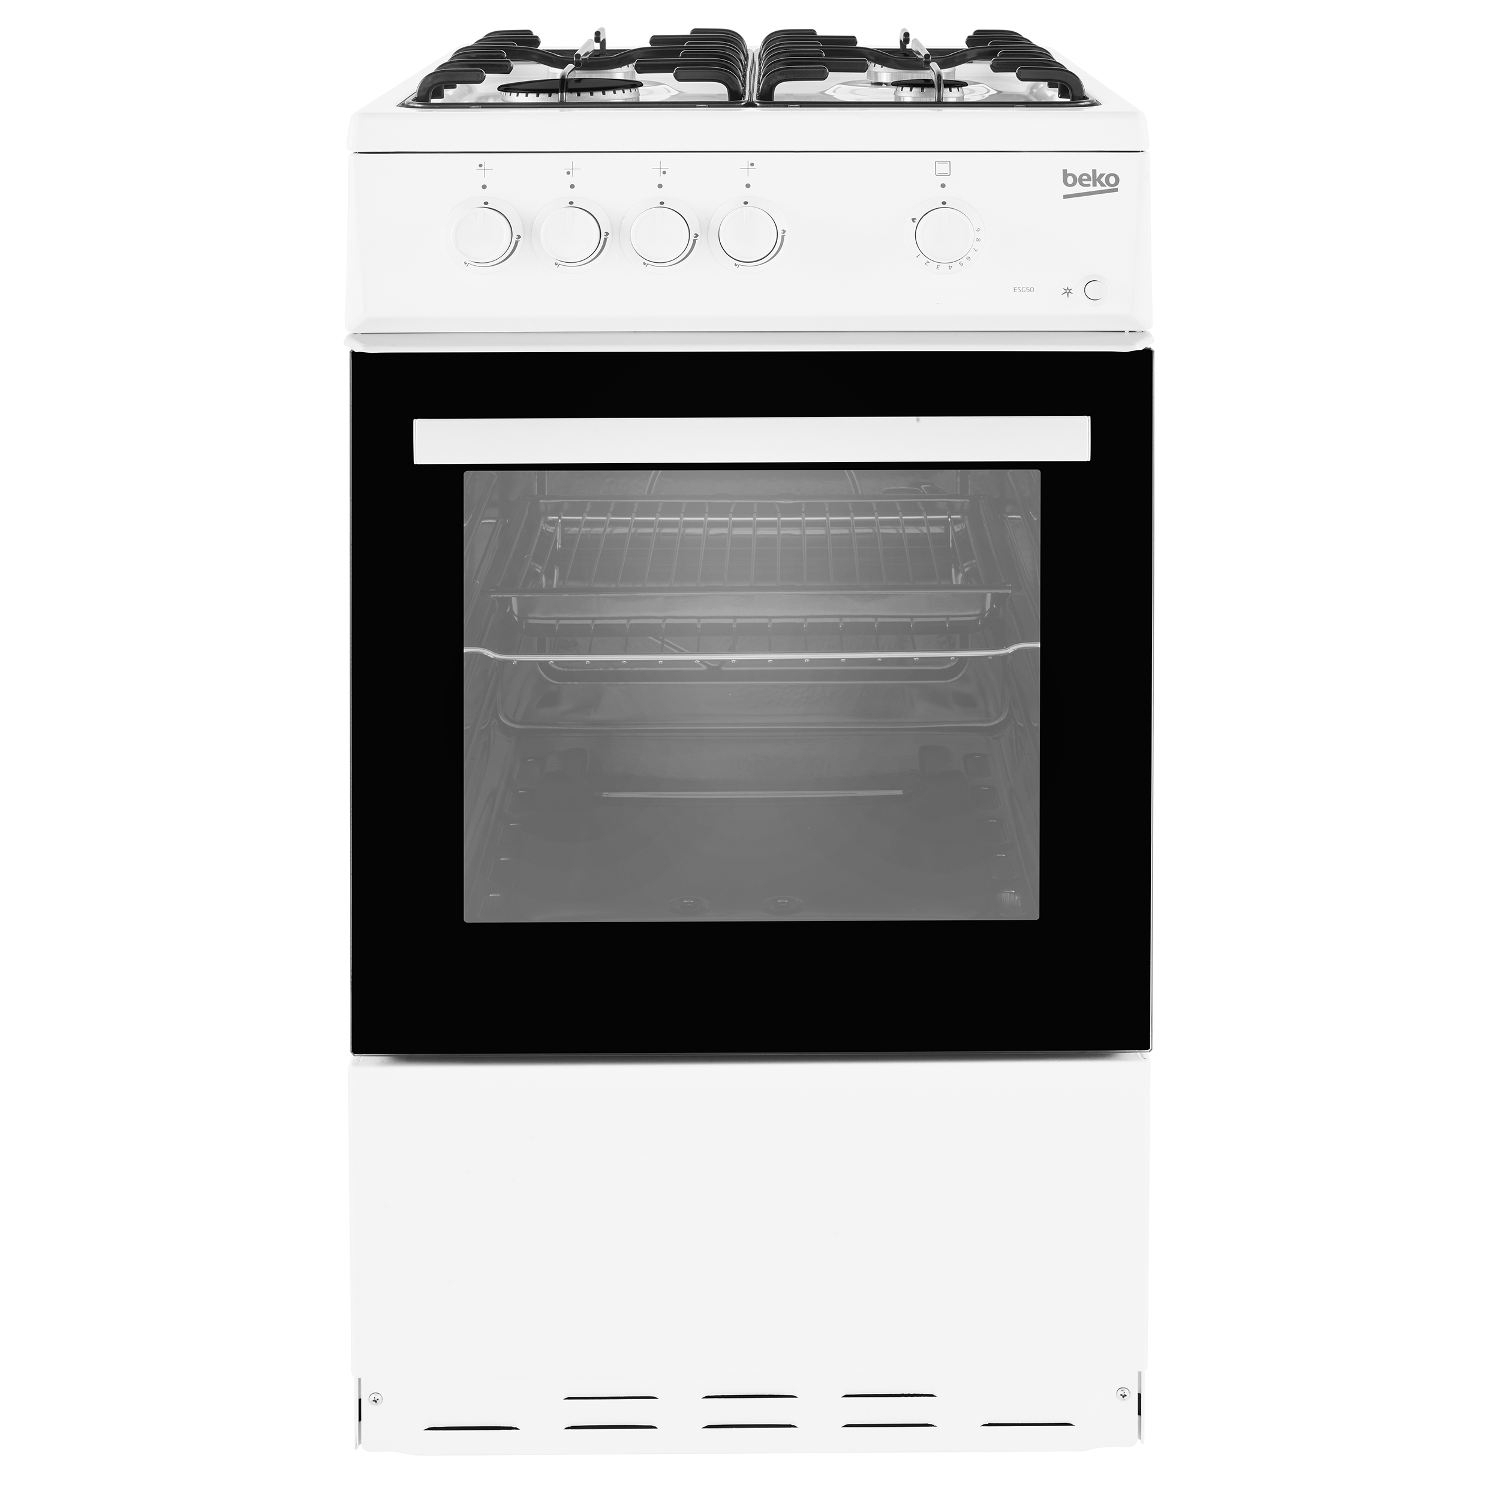 Beko 50cm Single Oven Gas Cooker - White - 3